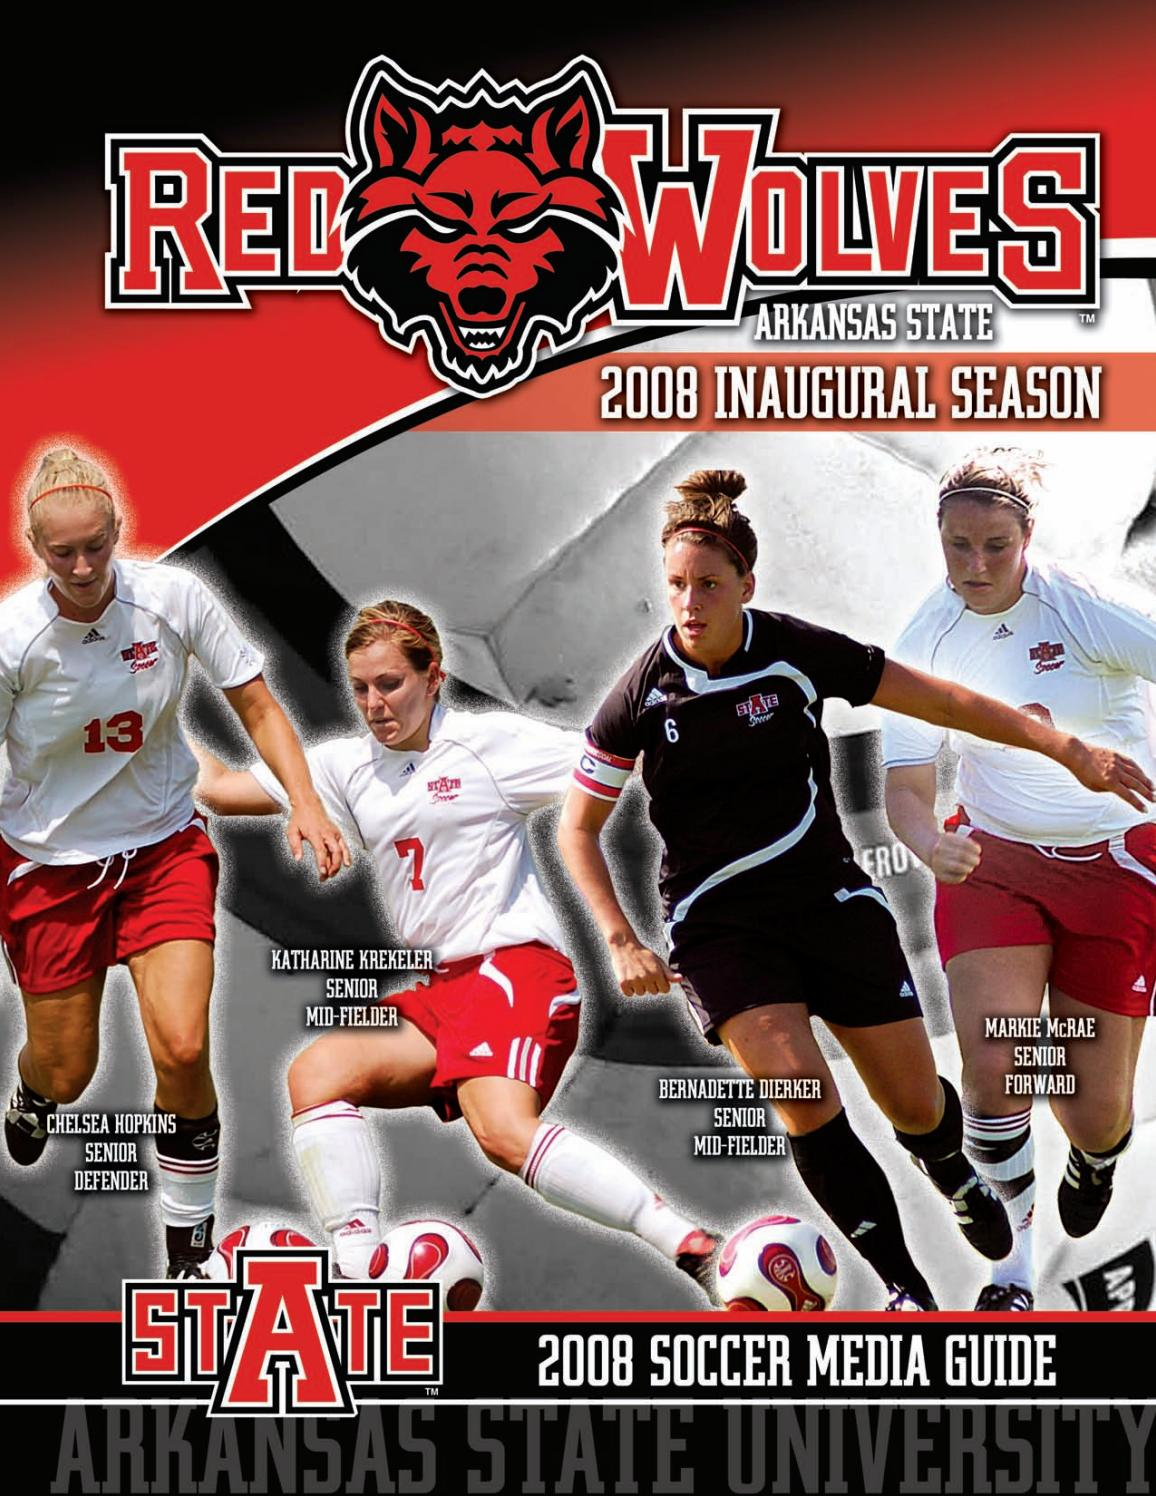 2008 Arkansas State Soccer Reference Guide by